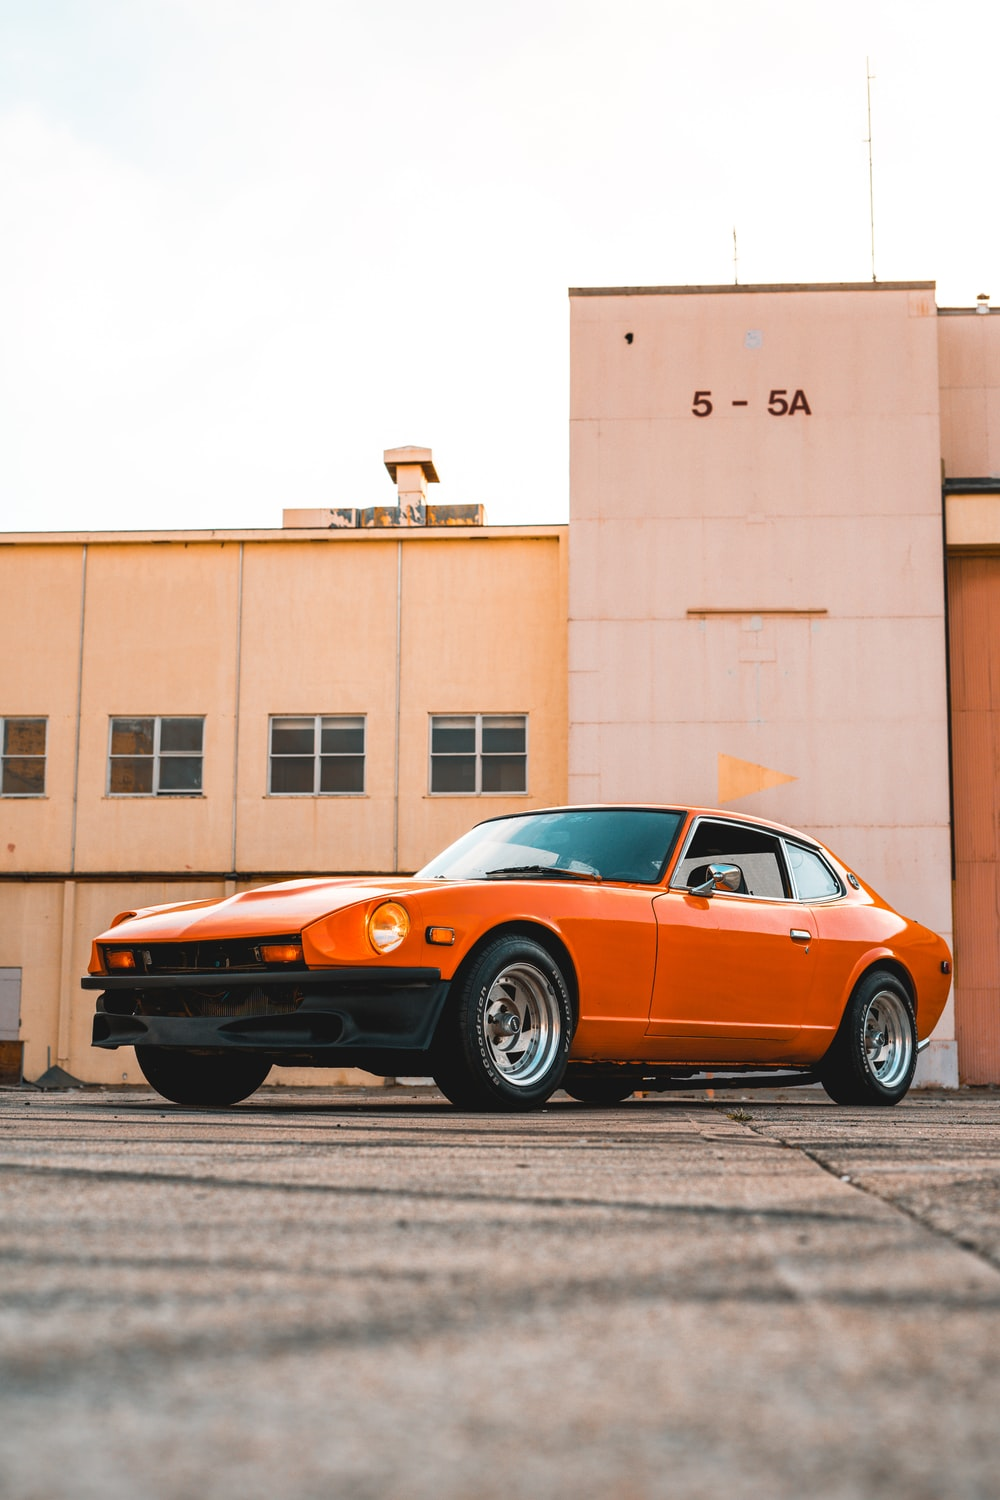 orange coupe parked beside brown building